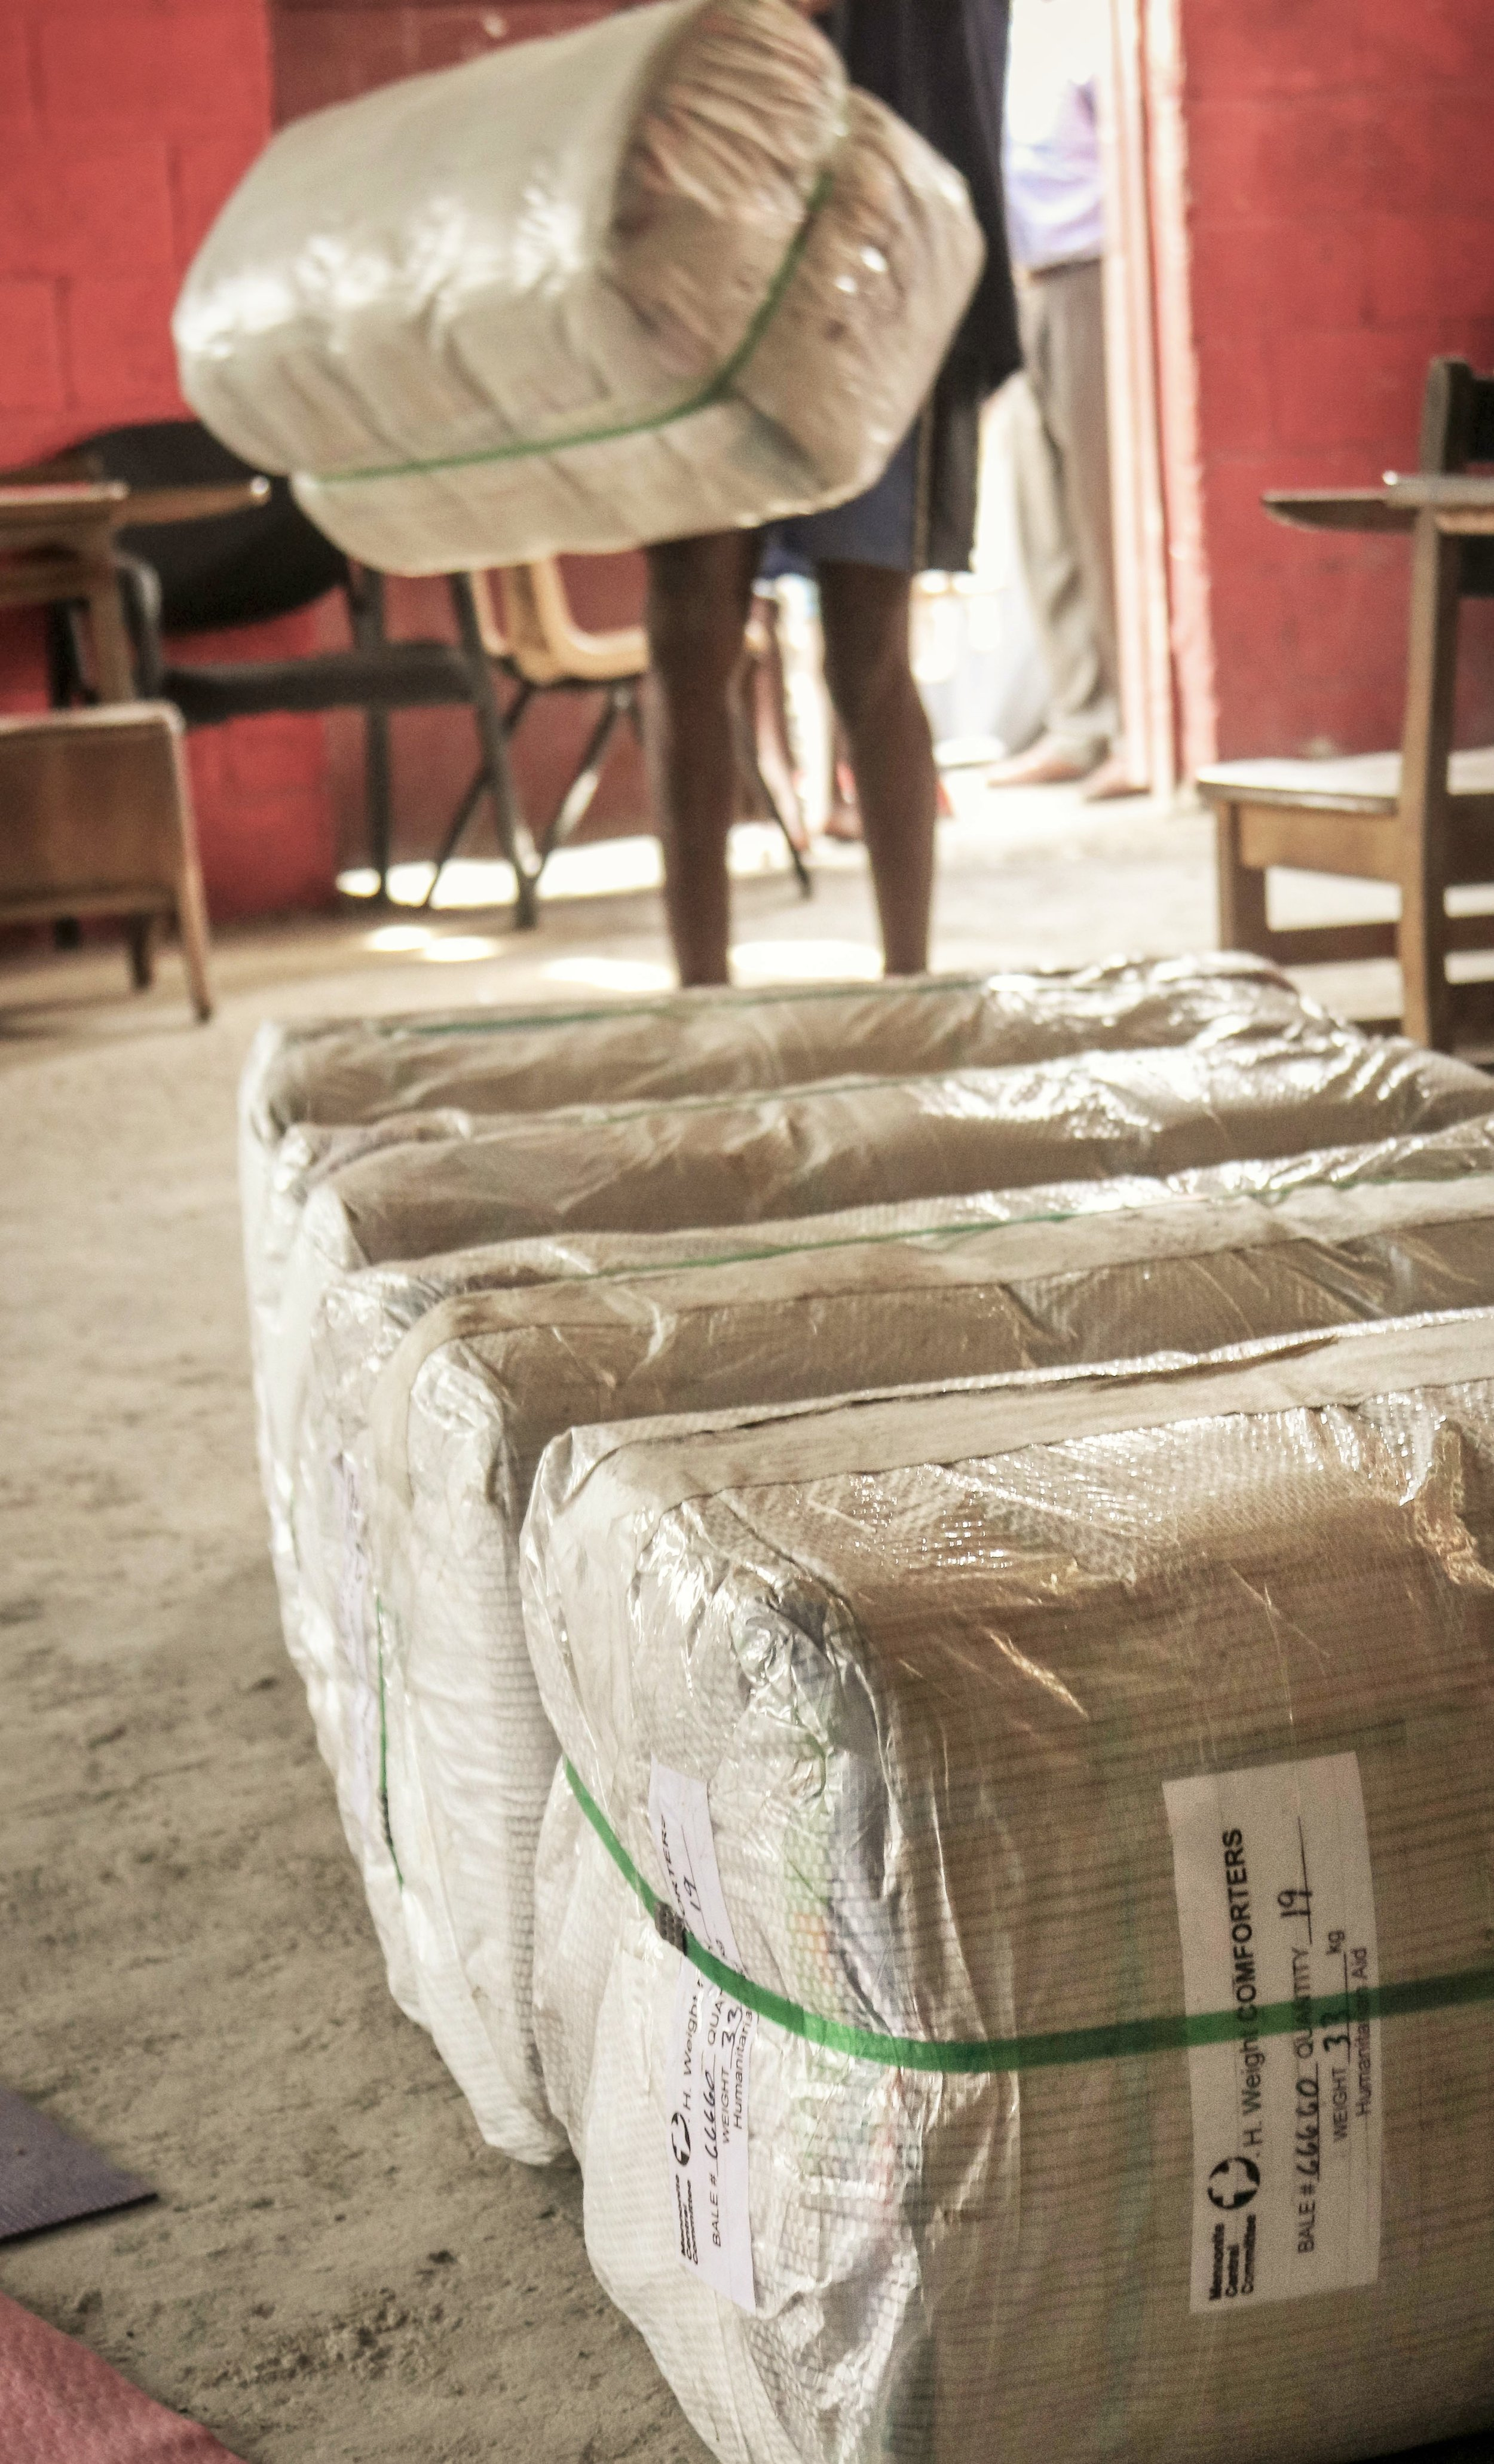 MCC comforters being staged for emergency distribution, Port-au-Prince, Haiti.